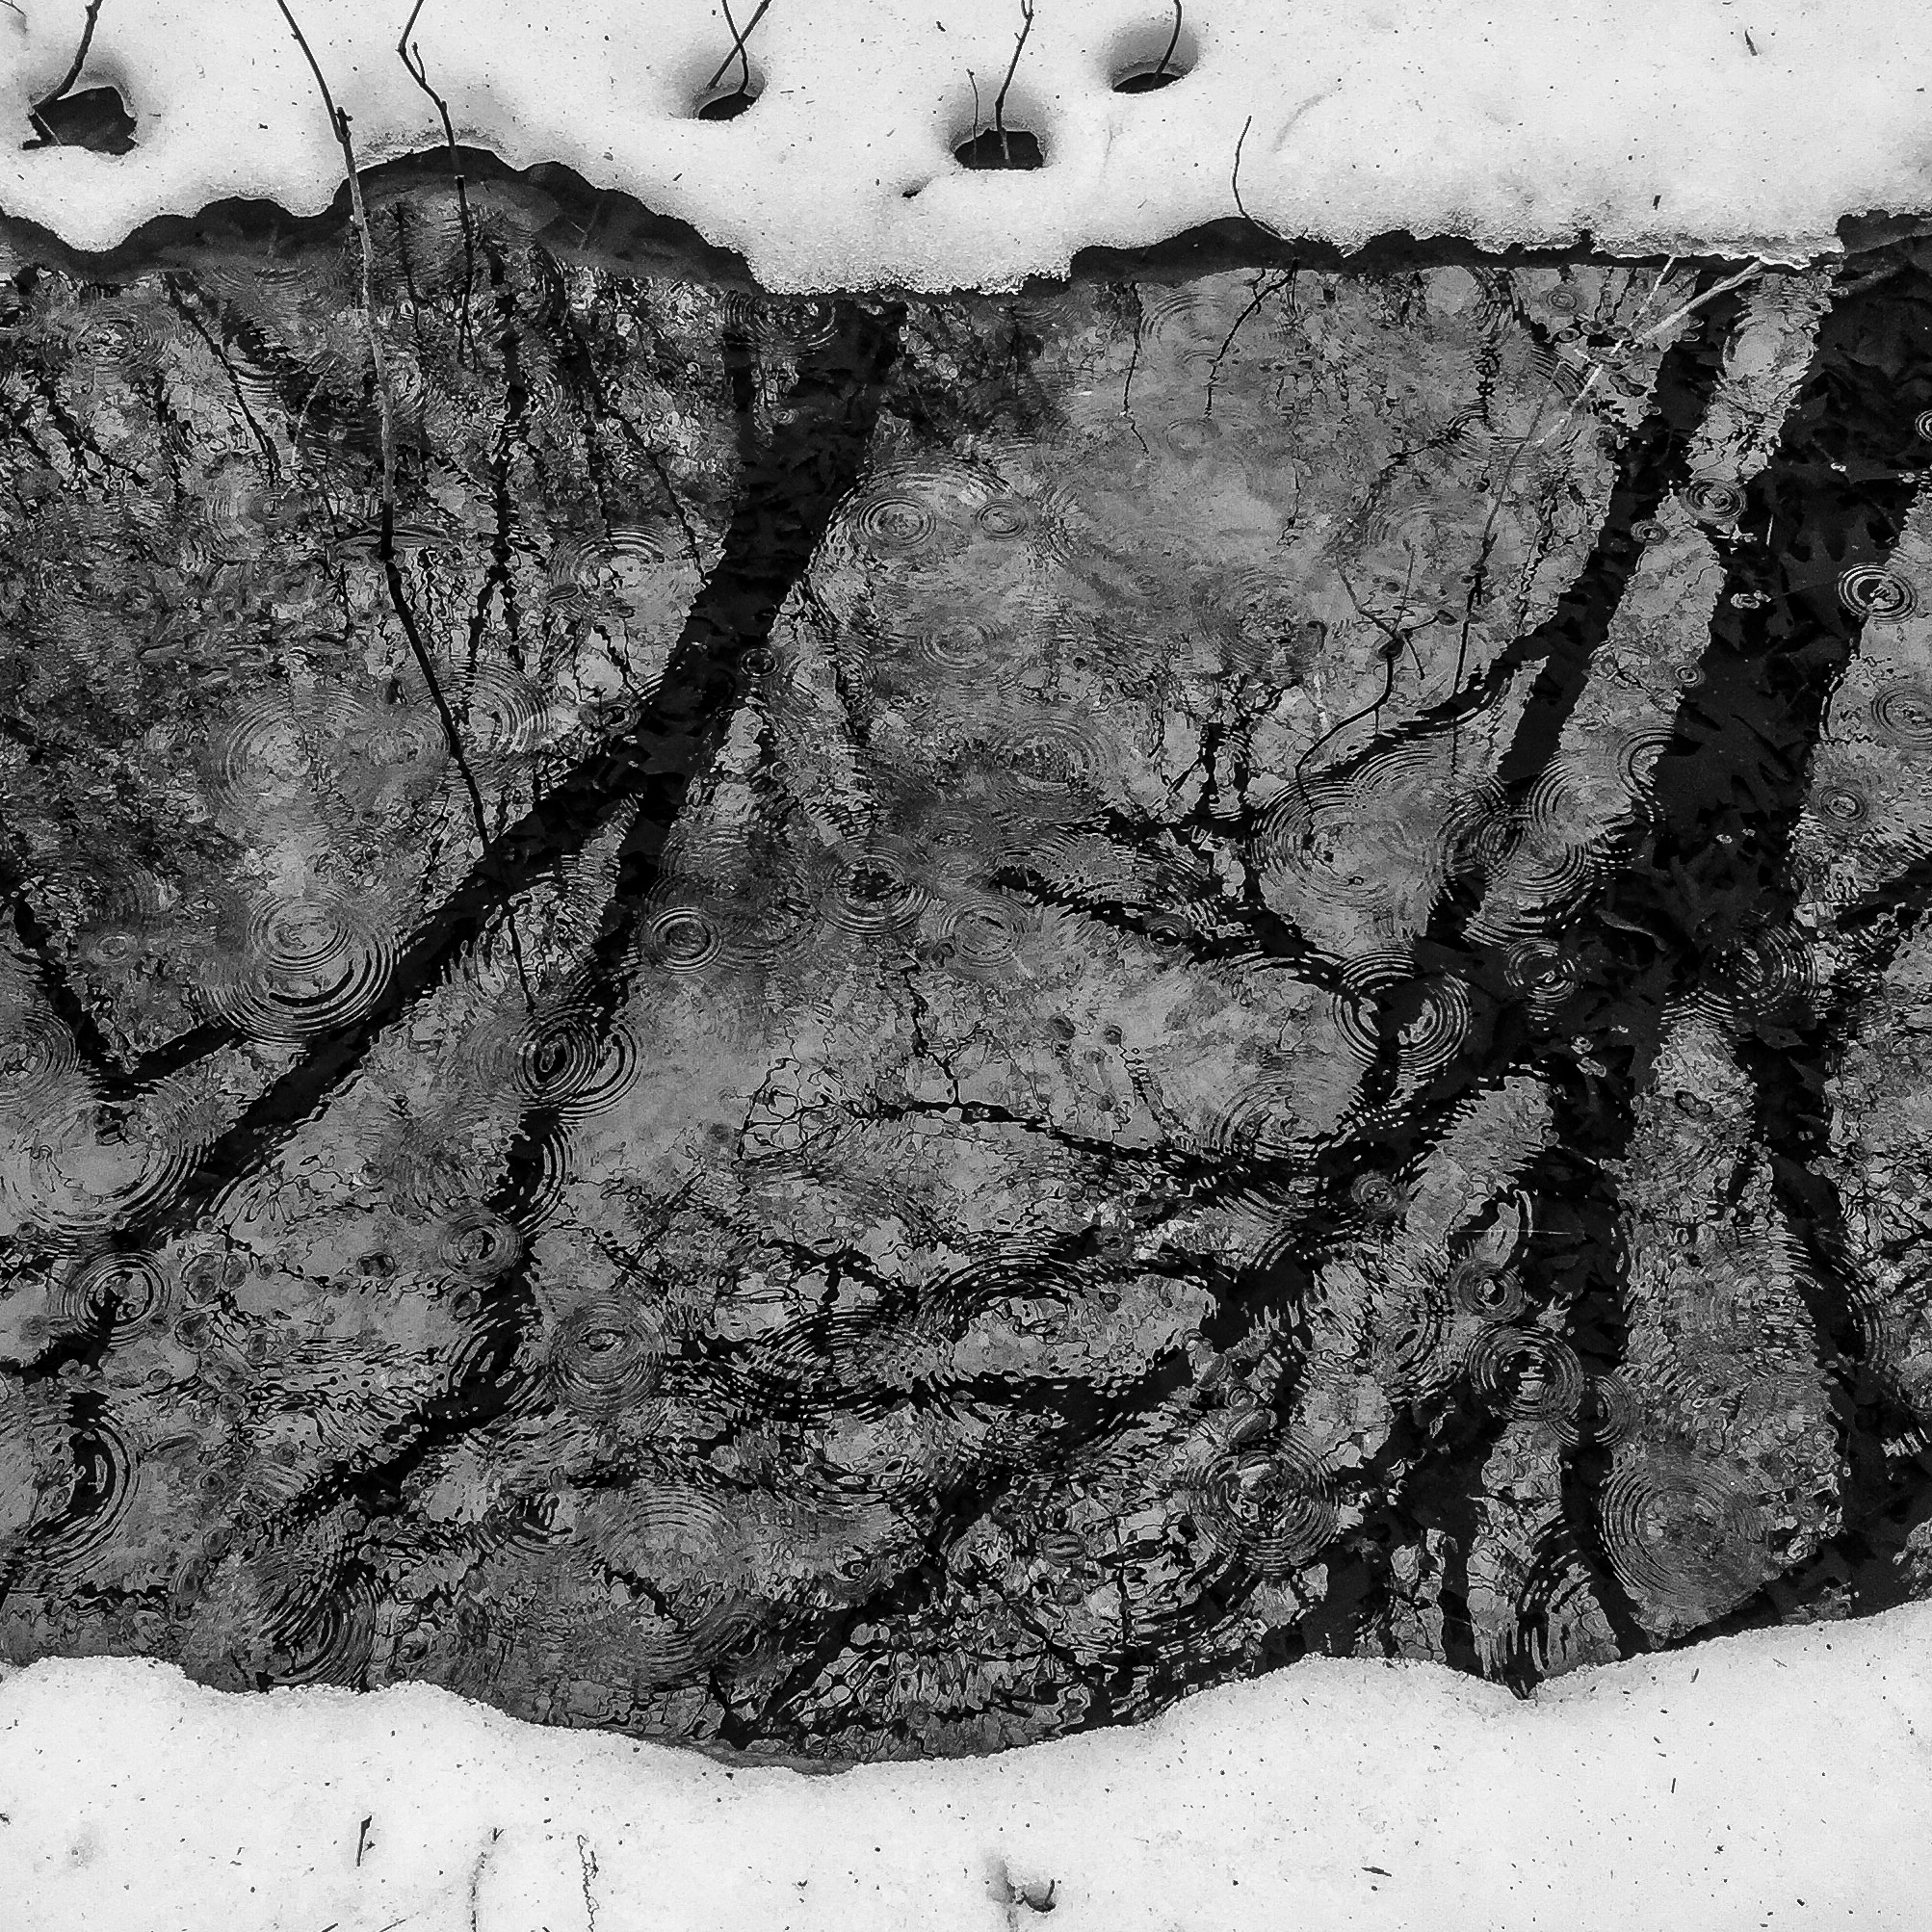 Rain on Bare Branched Reflection-1.jpg